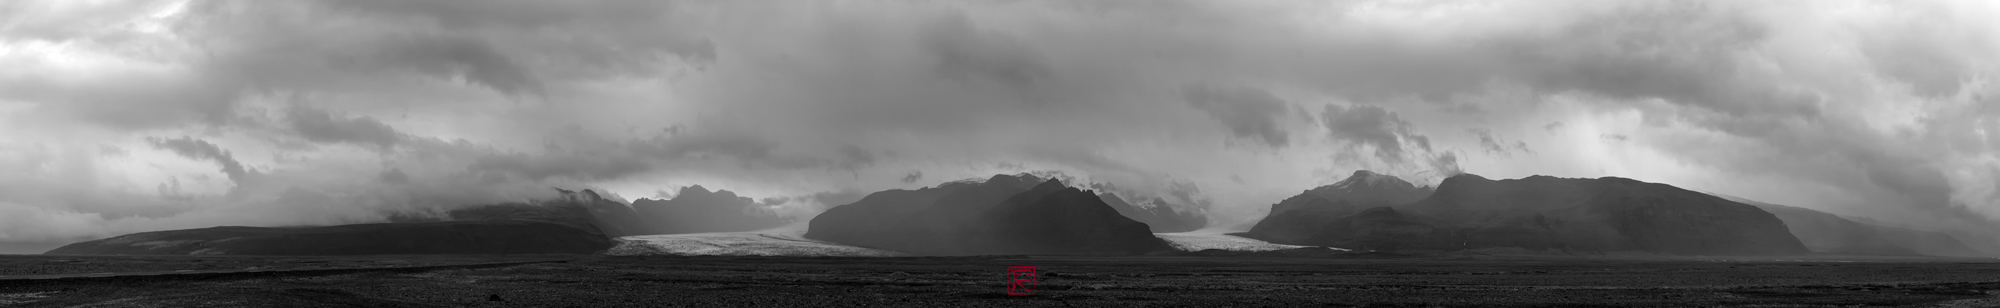 It was around 2006 when my son Victor and I took a trip around Iceland. As we headed North, driving through this long stretch of the road,this majestic view of the glacier was right in front of us and we felt compelled to stop and pay our respect to the land.I think it's  þórisjökull, I'm not certain. Maybe my Icelandic friends can correct me on this.